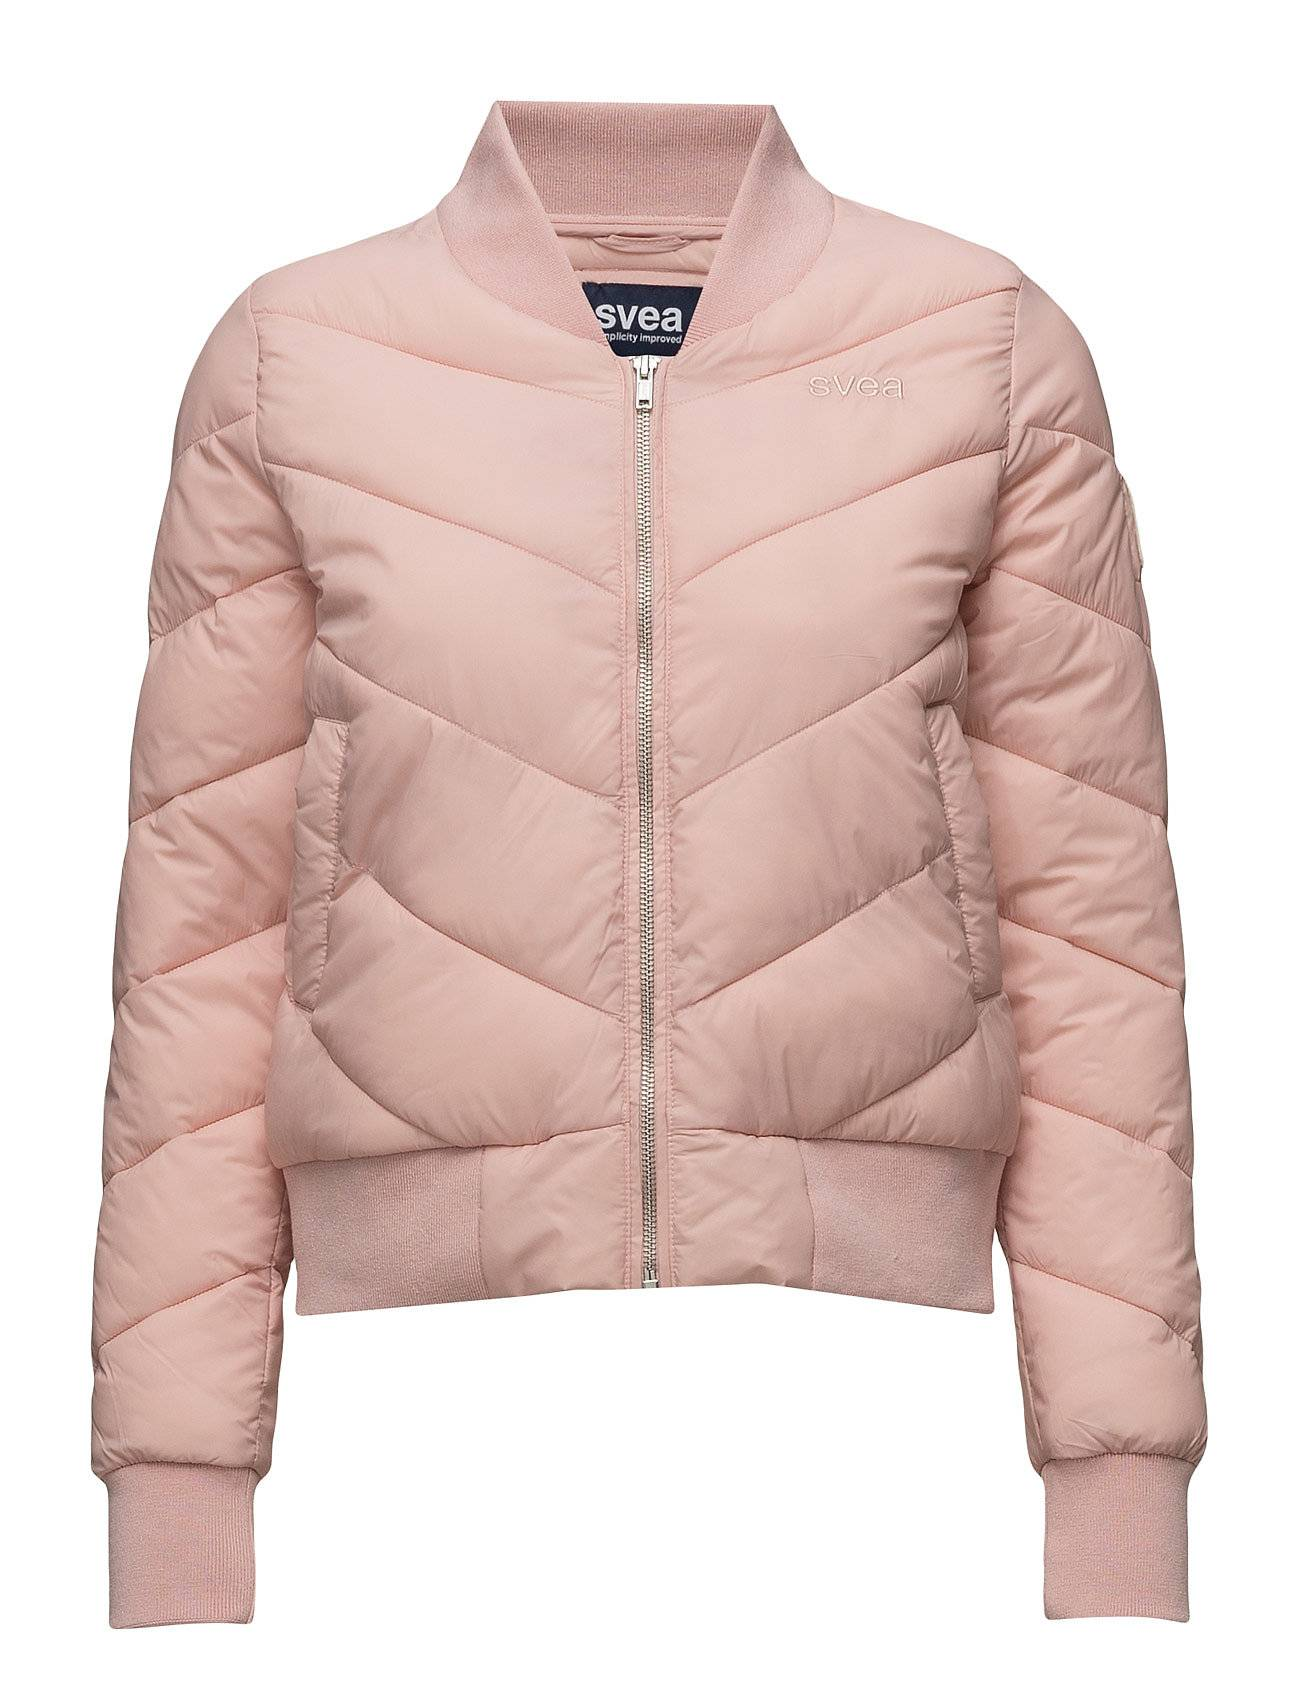 Svea Dawn Jacket